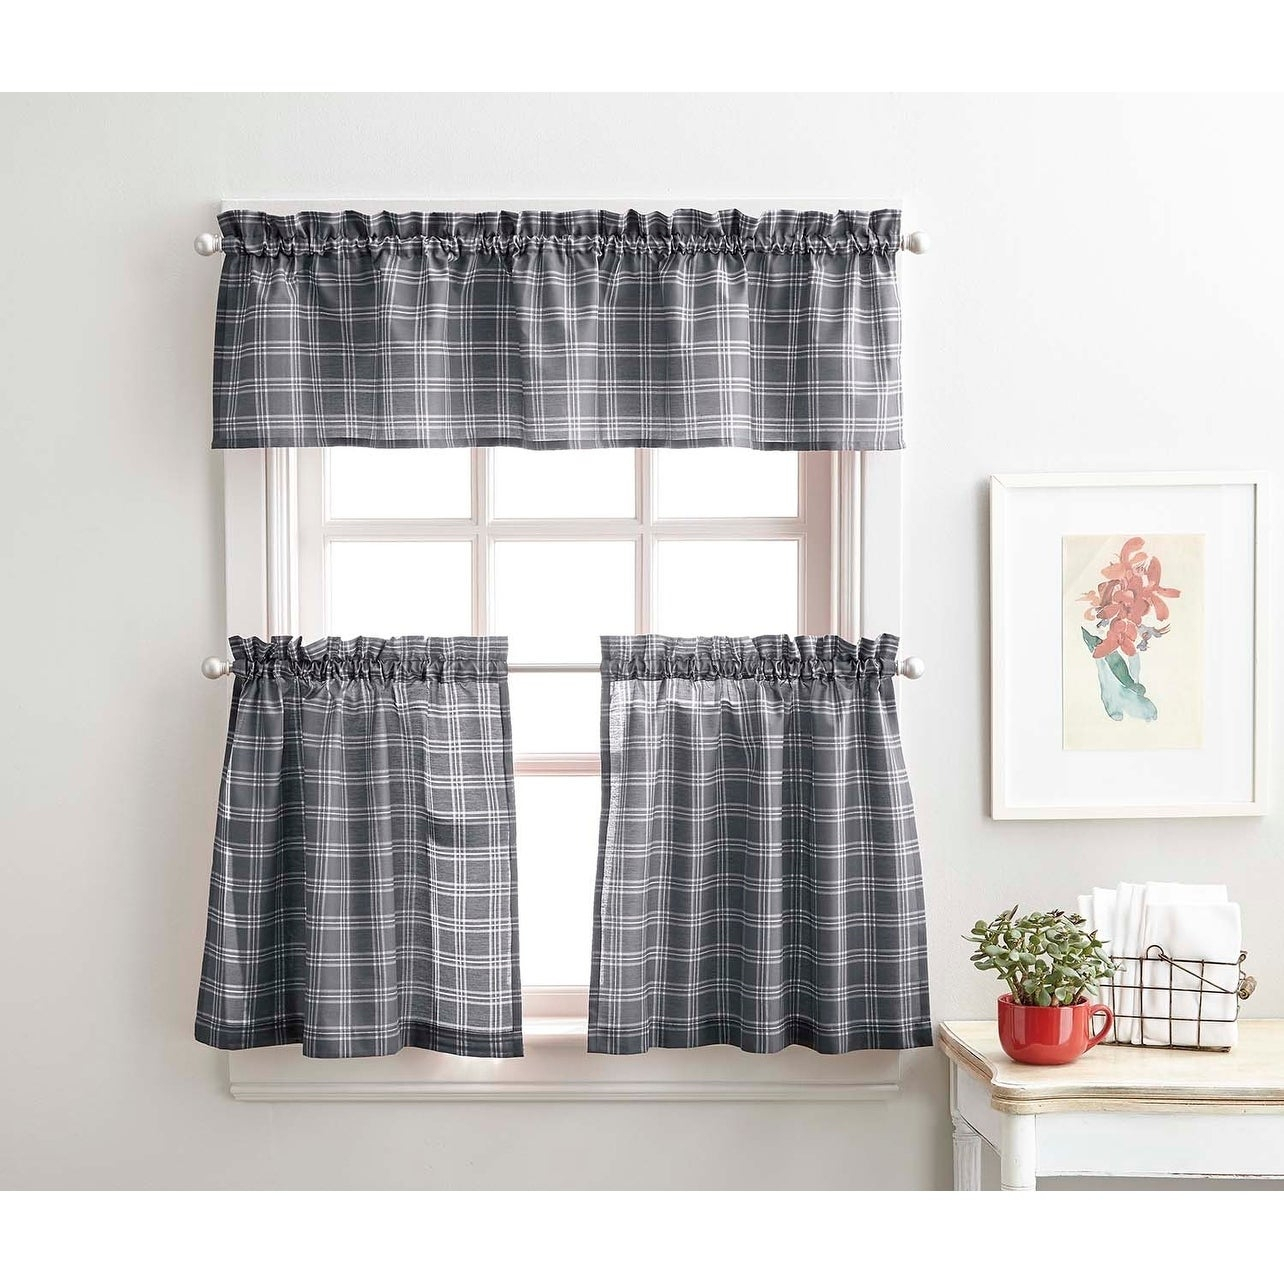 """Lodge Plaid 3 Piece Kitchen Curtain Tier And Valance Set – 36"""" 3Pc Set For Cotton Blend Classic Checkered Decorative Window Curtains (View 17 of 20)"""